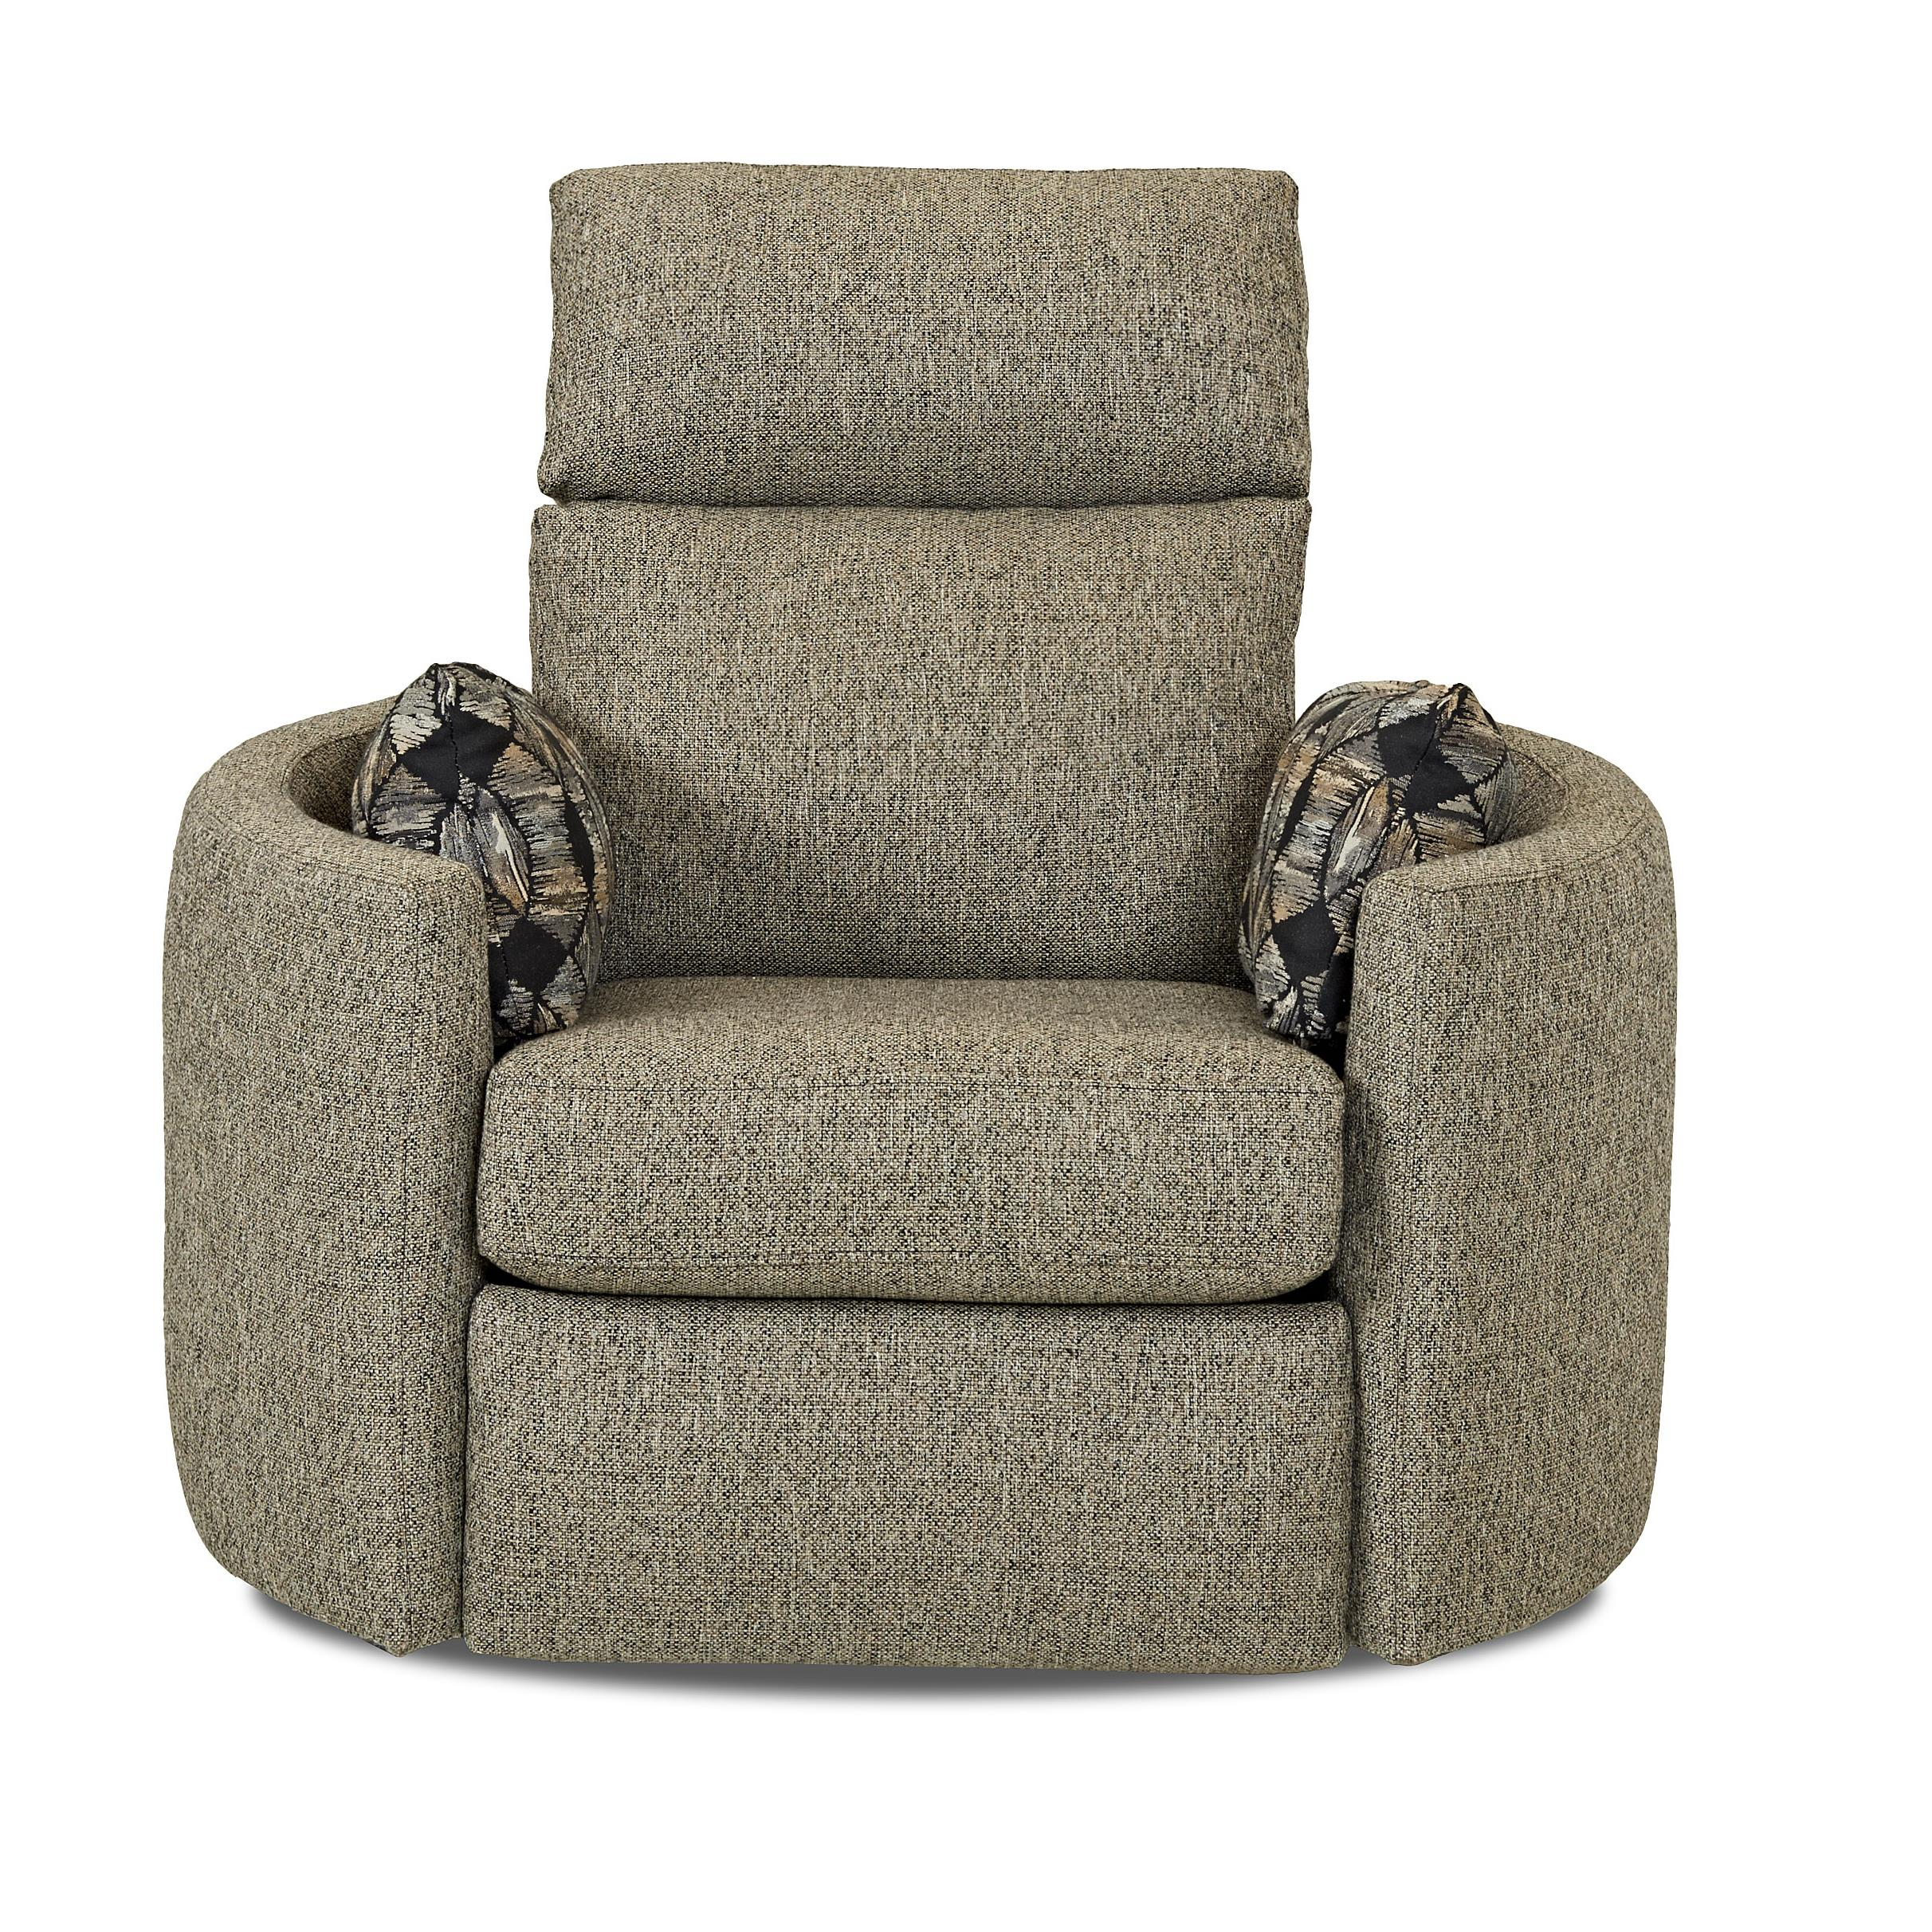 Klaussner Cosmo Reclining Swivel Chair - Item Number: 73308 RSWVL-MARV-STON